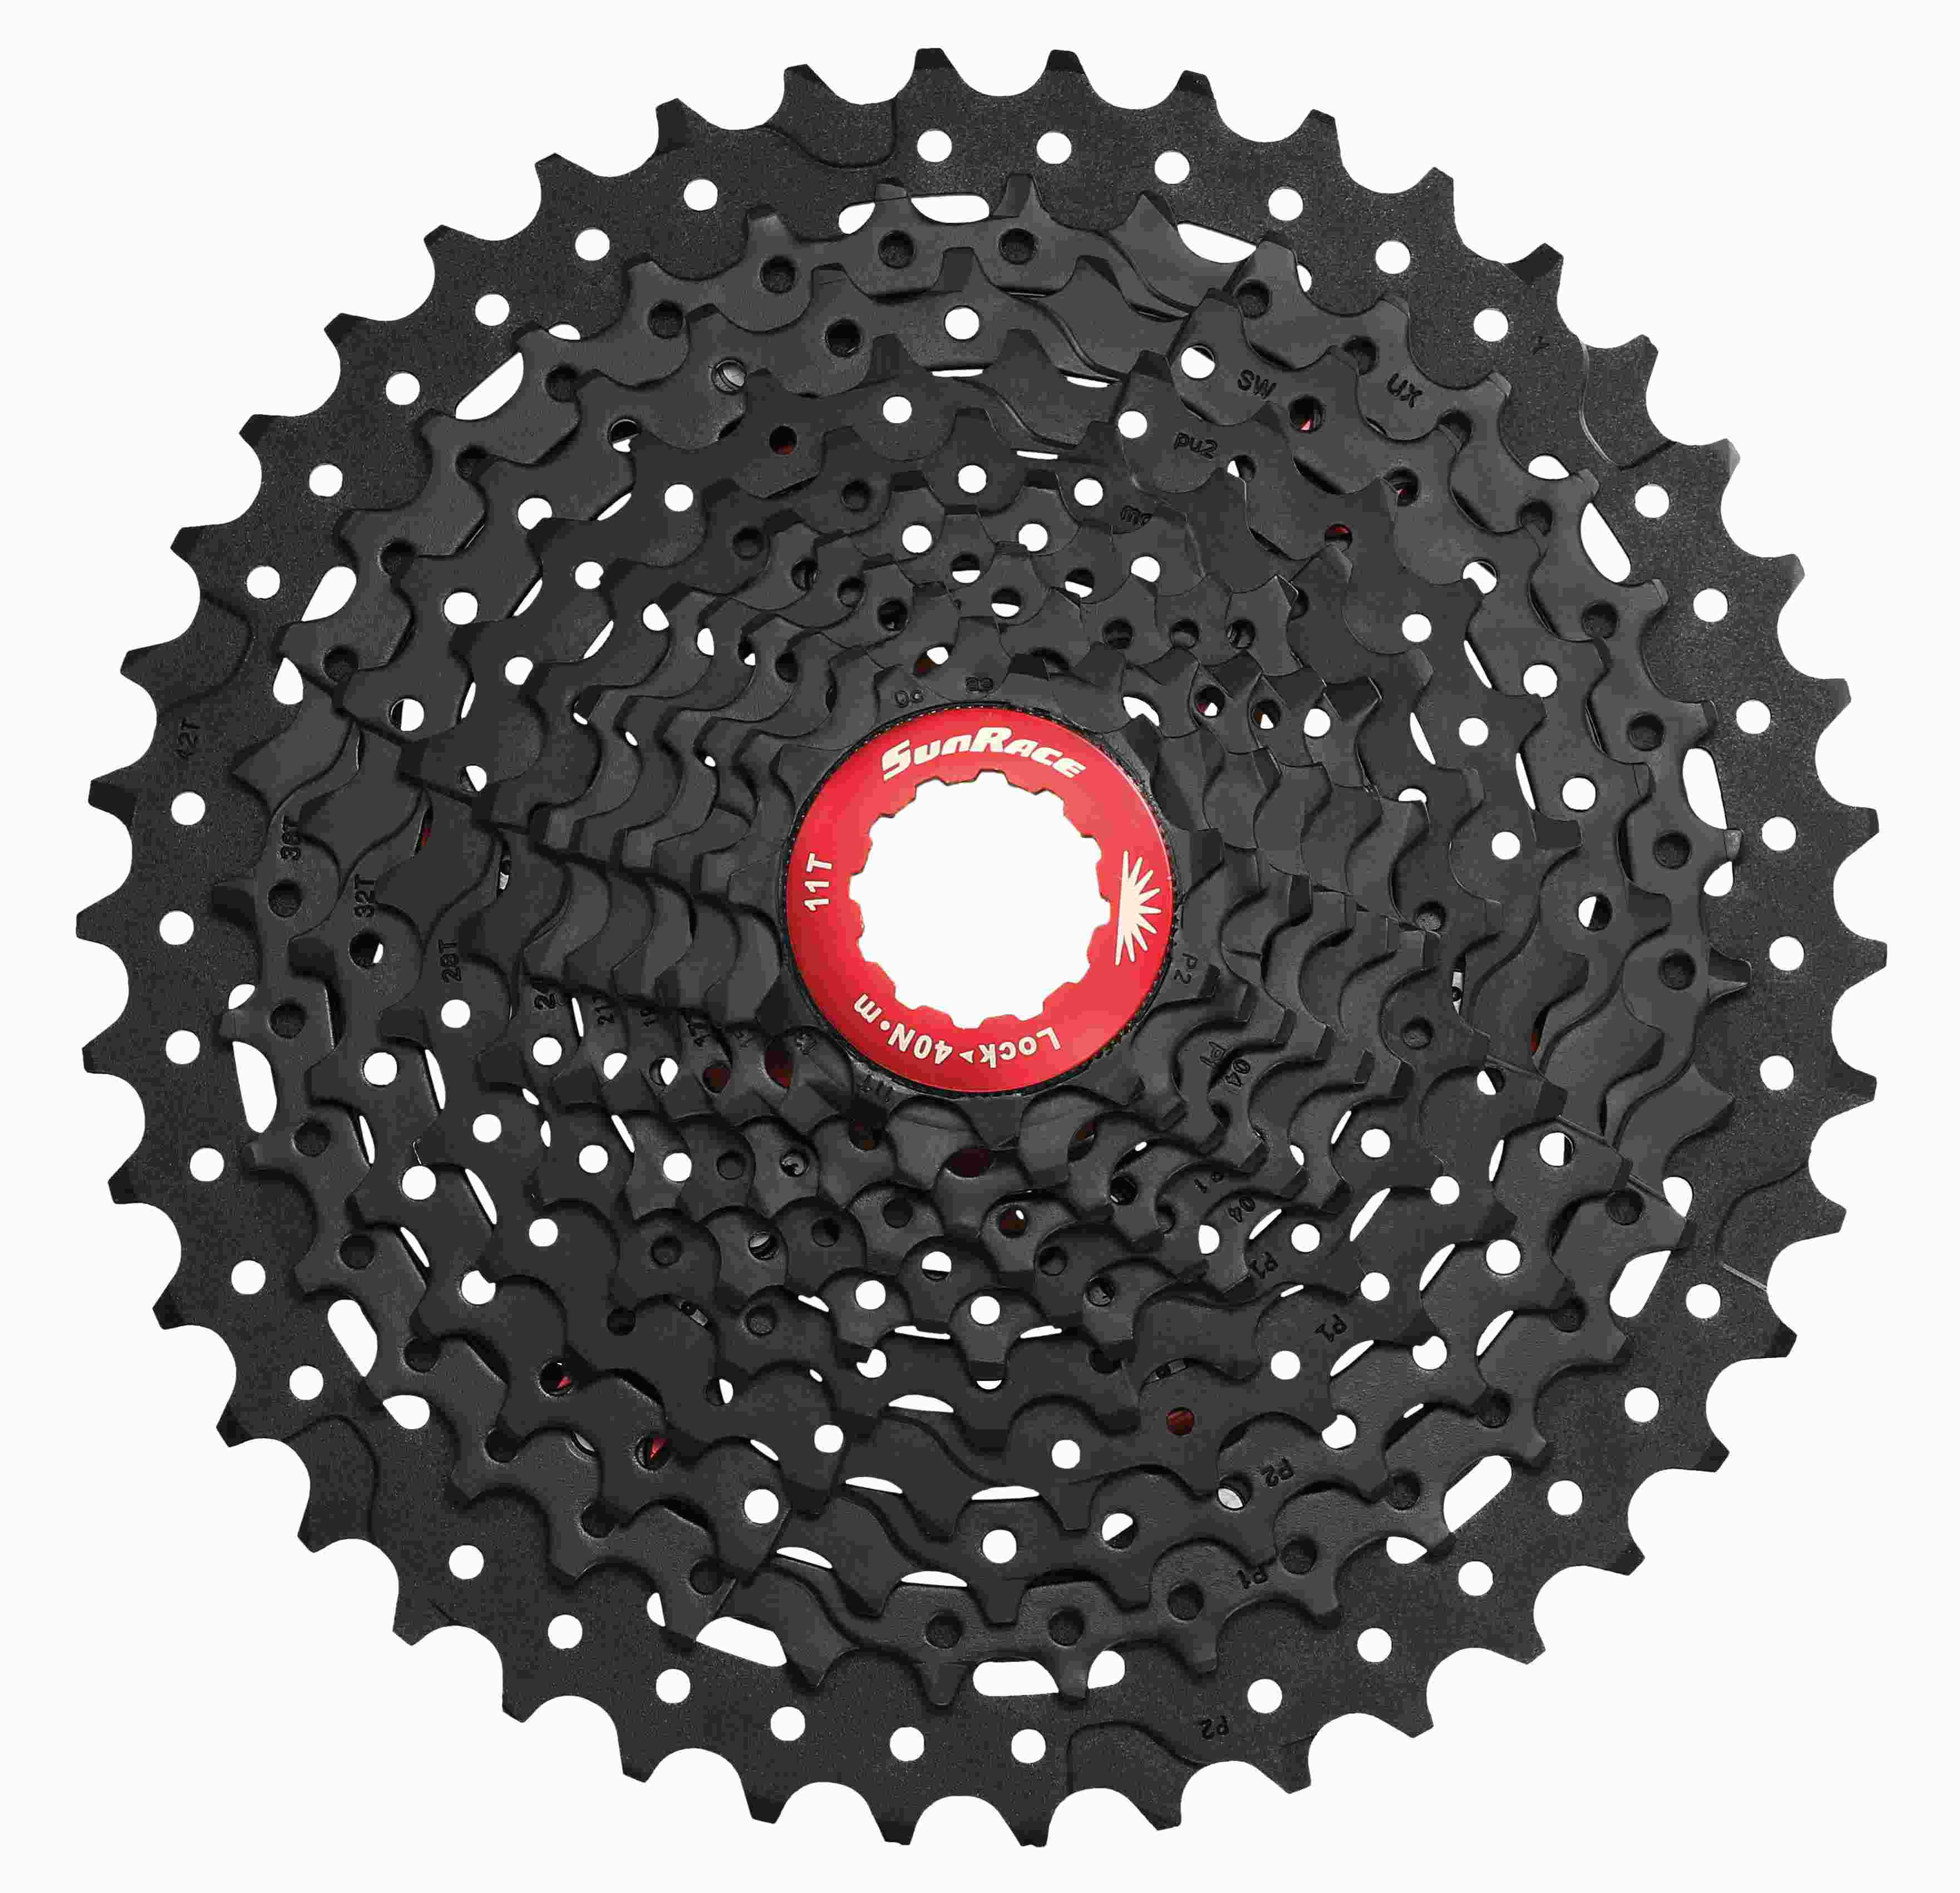 Cassete SUN RACE 11v 11-50 Black/Red CSMX80